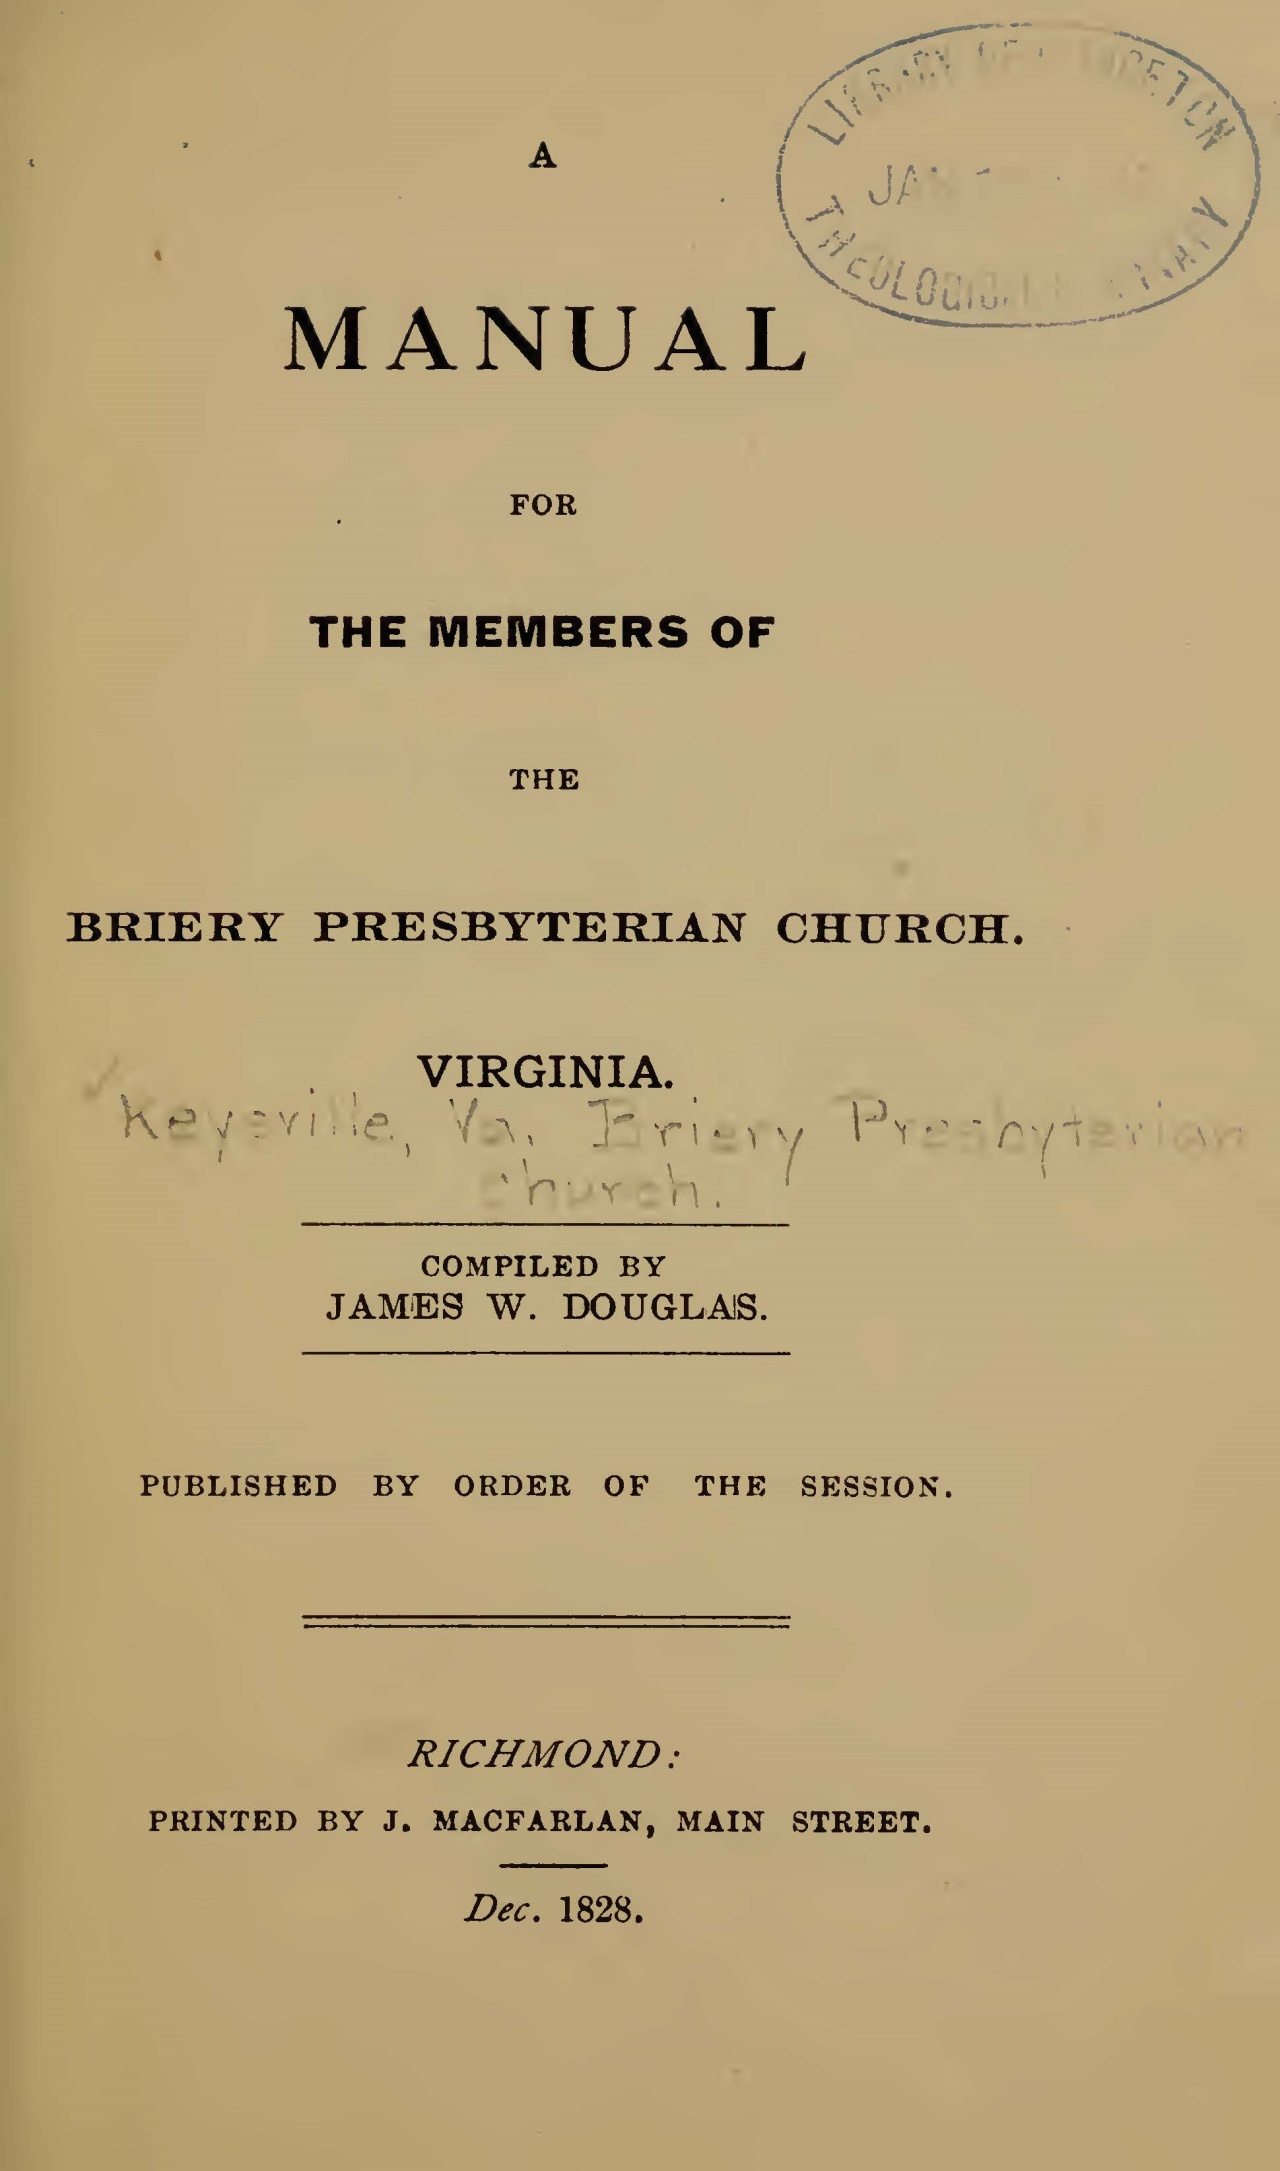 Douglass, James Walter, A Manual For the Members of the Briery Presbyterian Church, Virginia Title Page.jpg